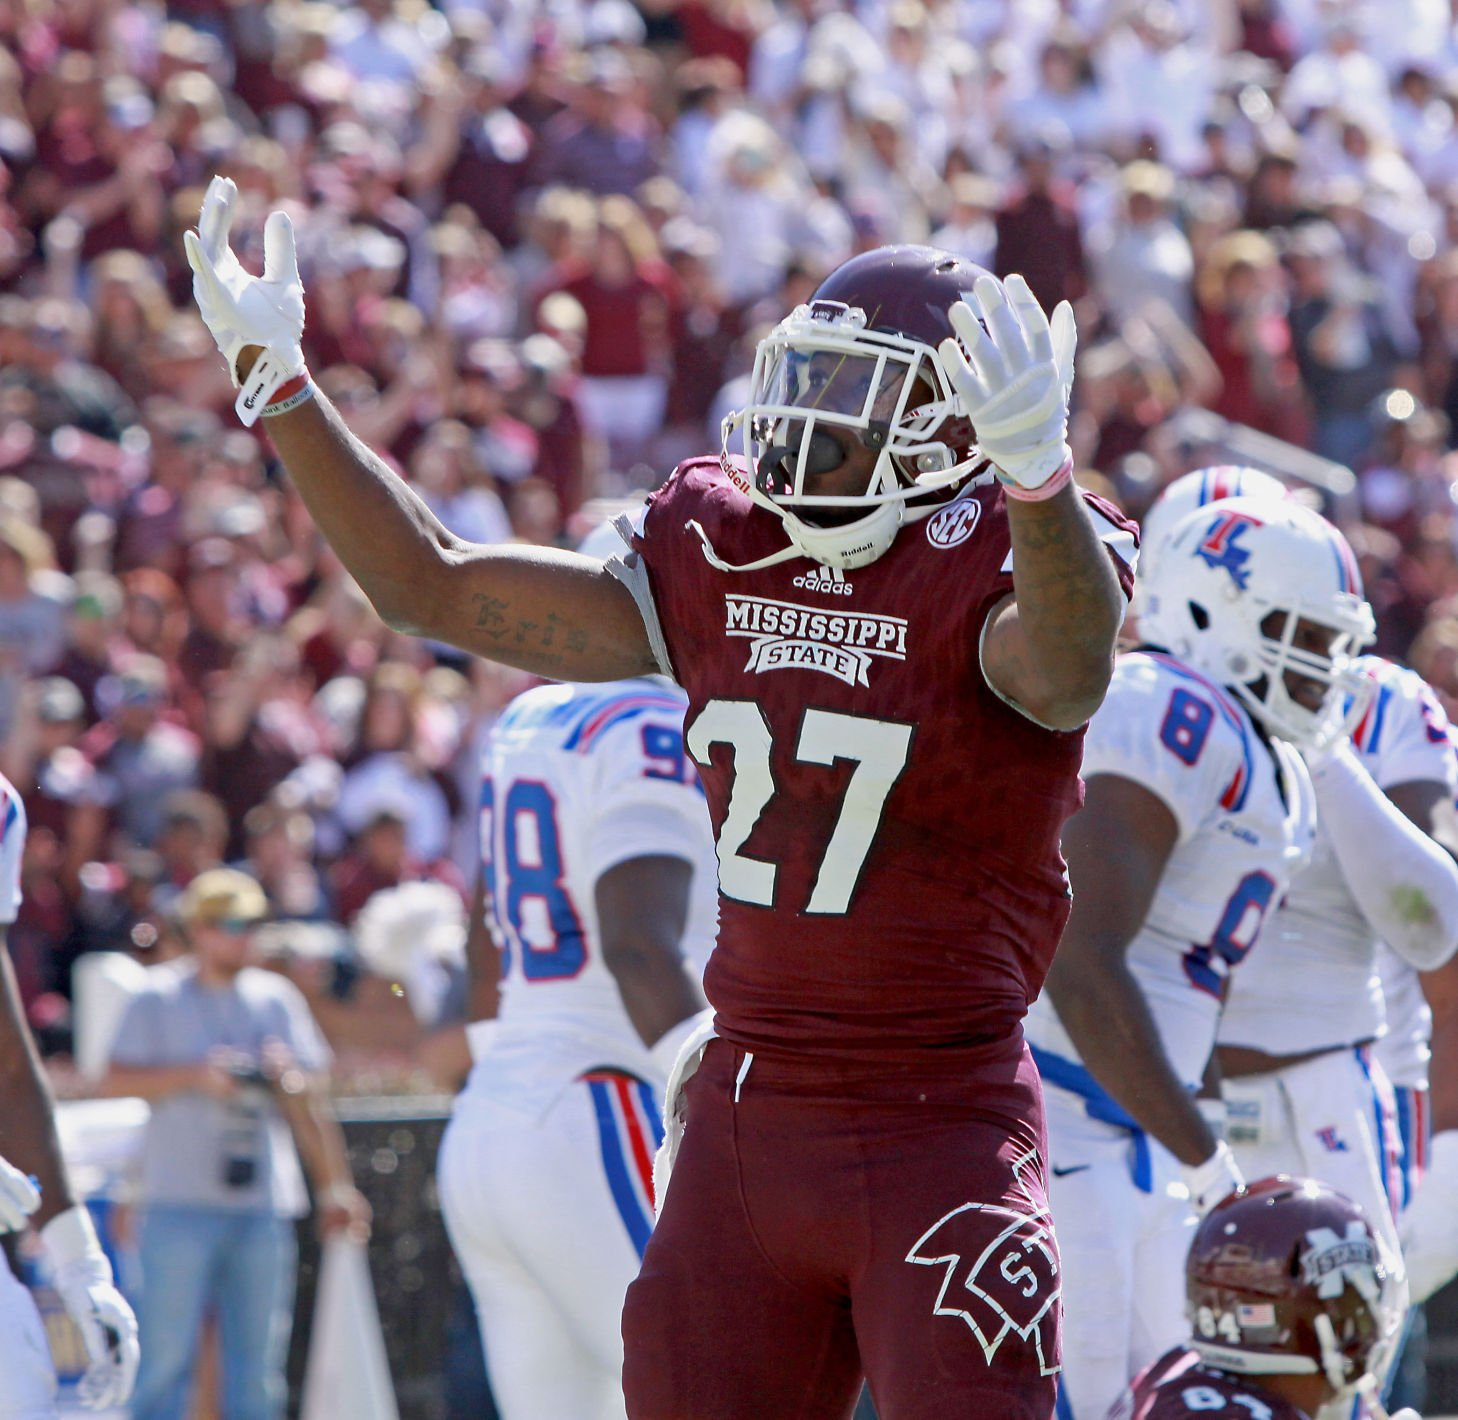 MSU defense faces different challenge vs. Louisiana Tech